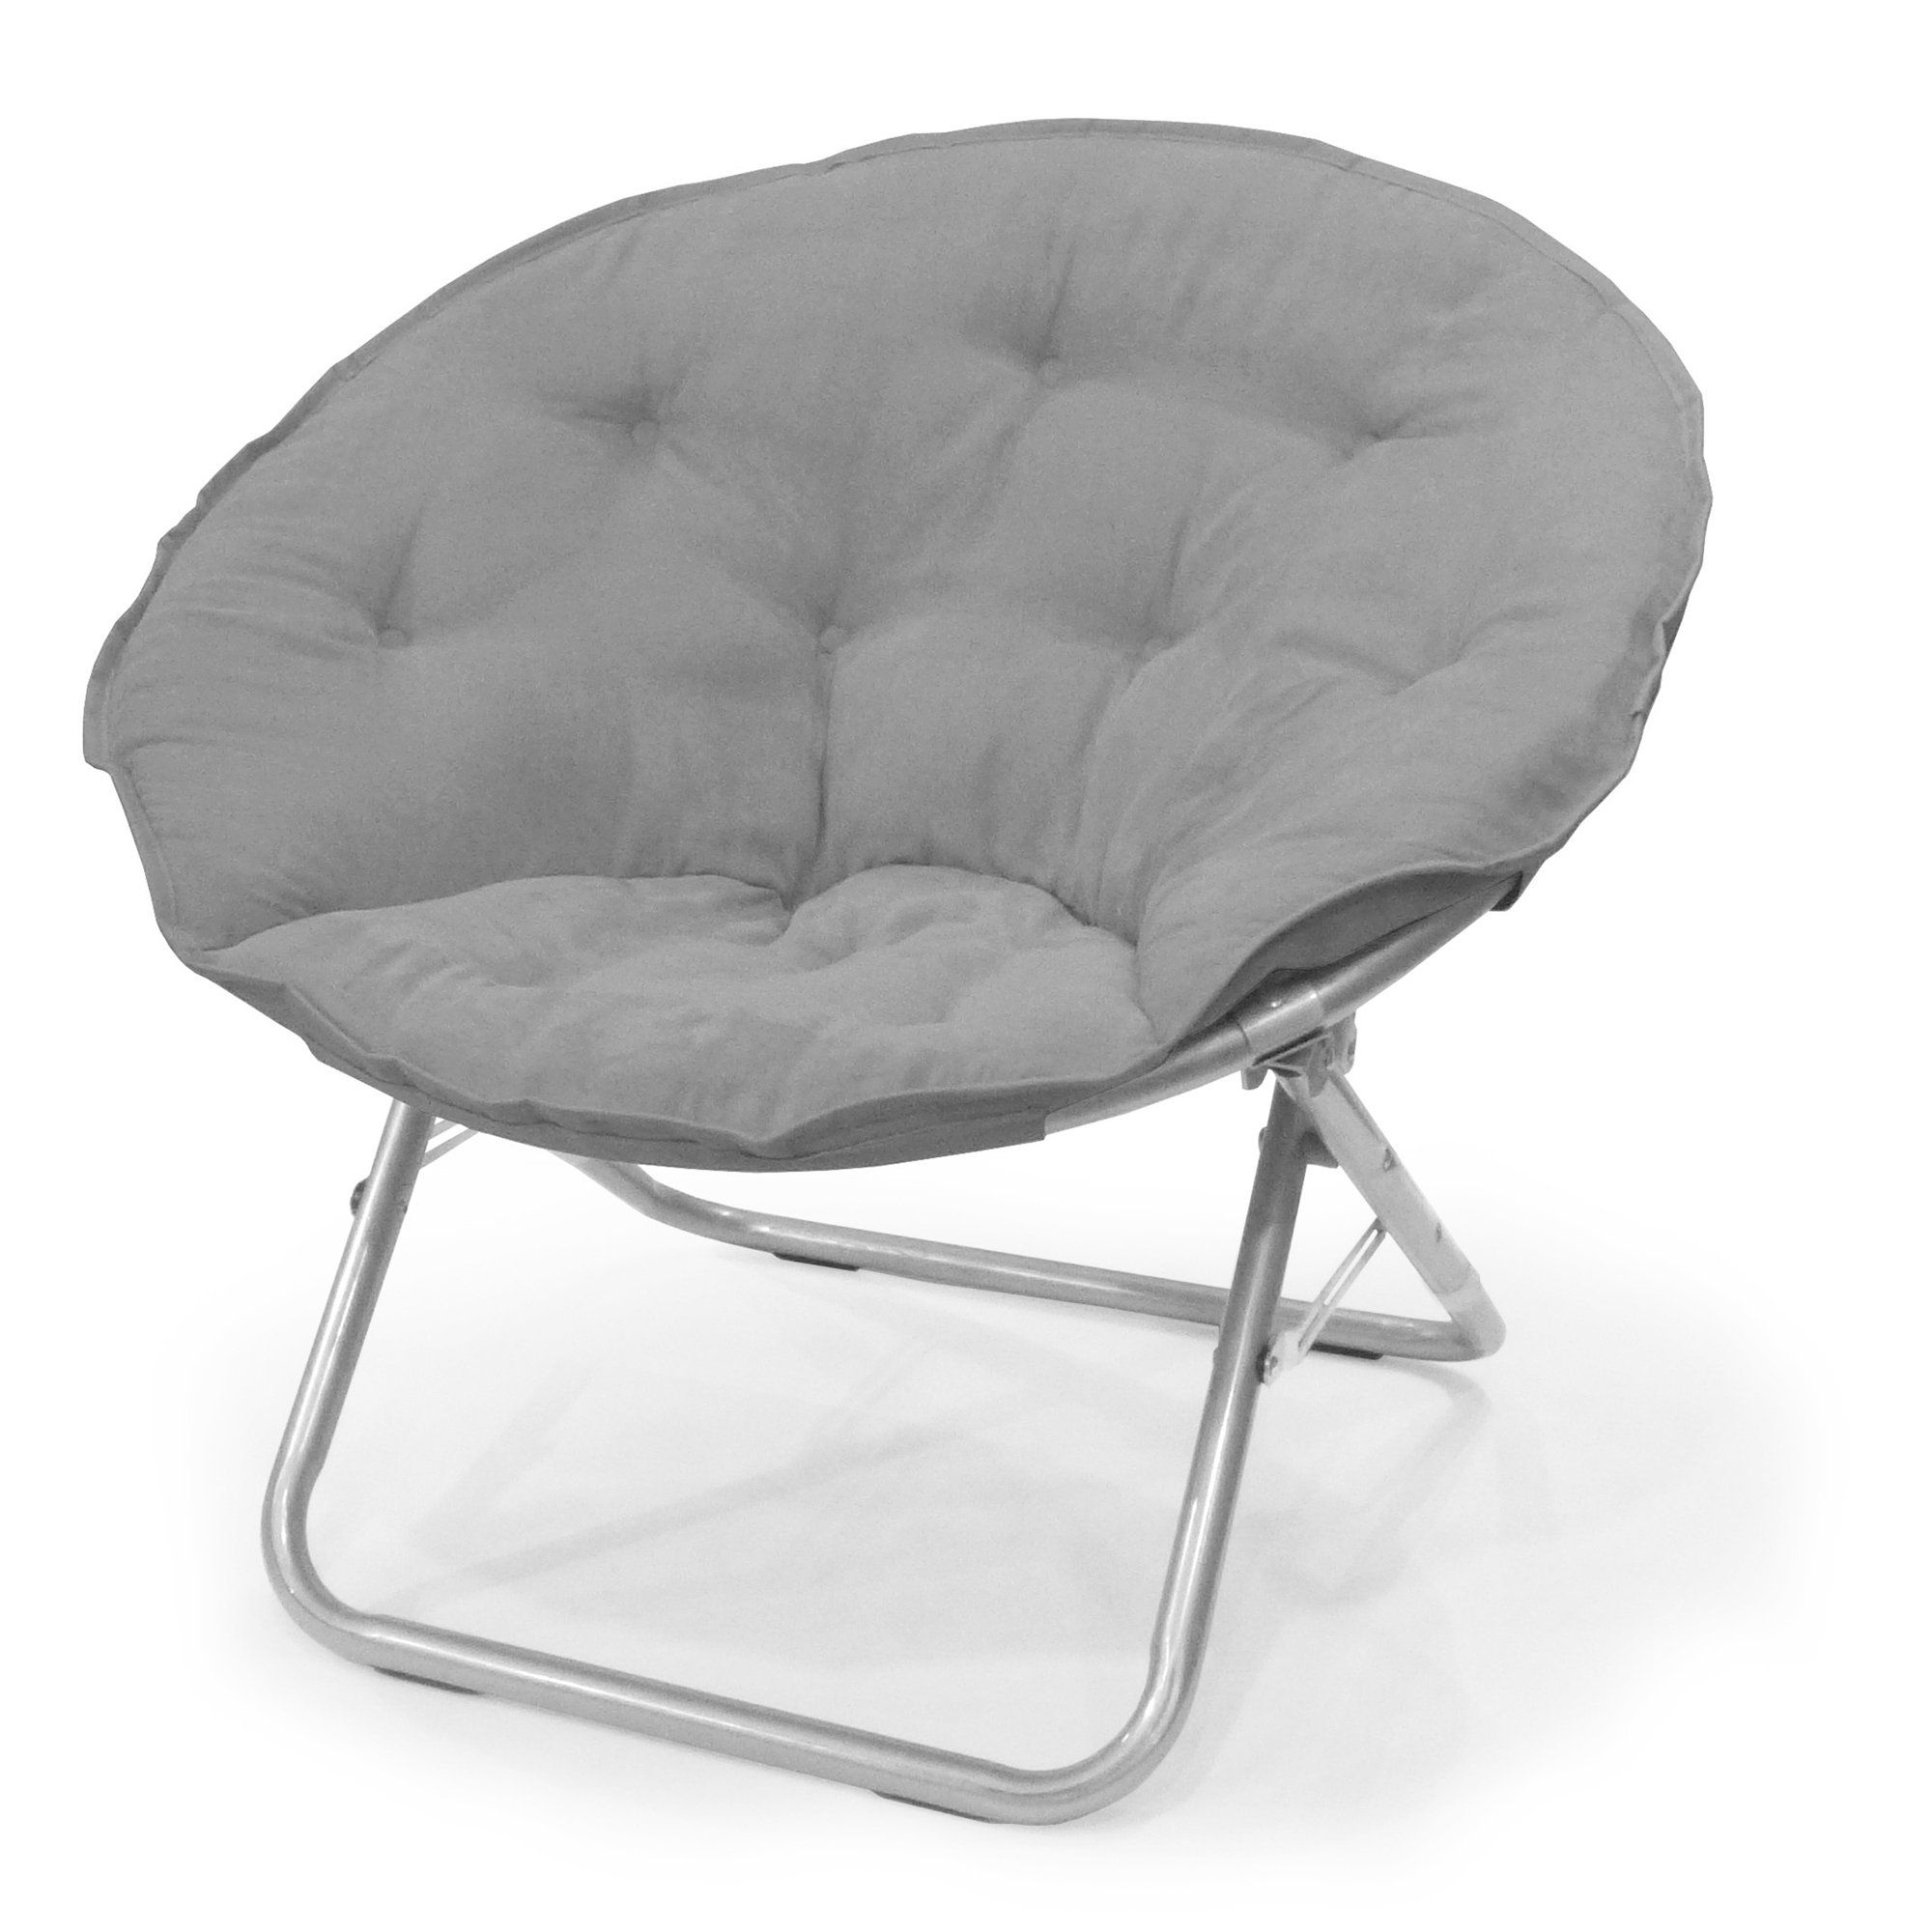 Ebern Designs Surround Yourself In Comfort In This – Vozeli Inside Renay Papasan Chairs (View 11 of 15)